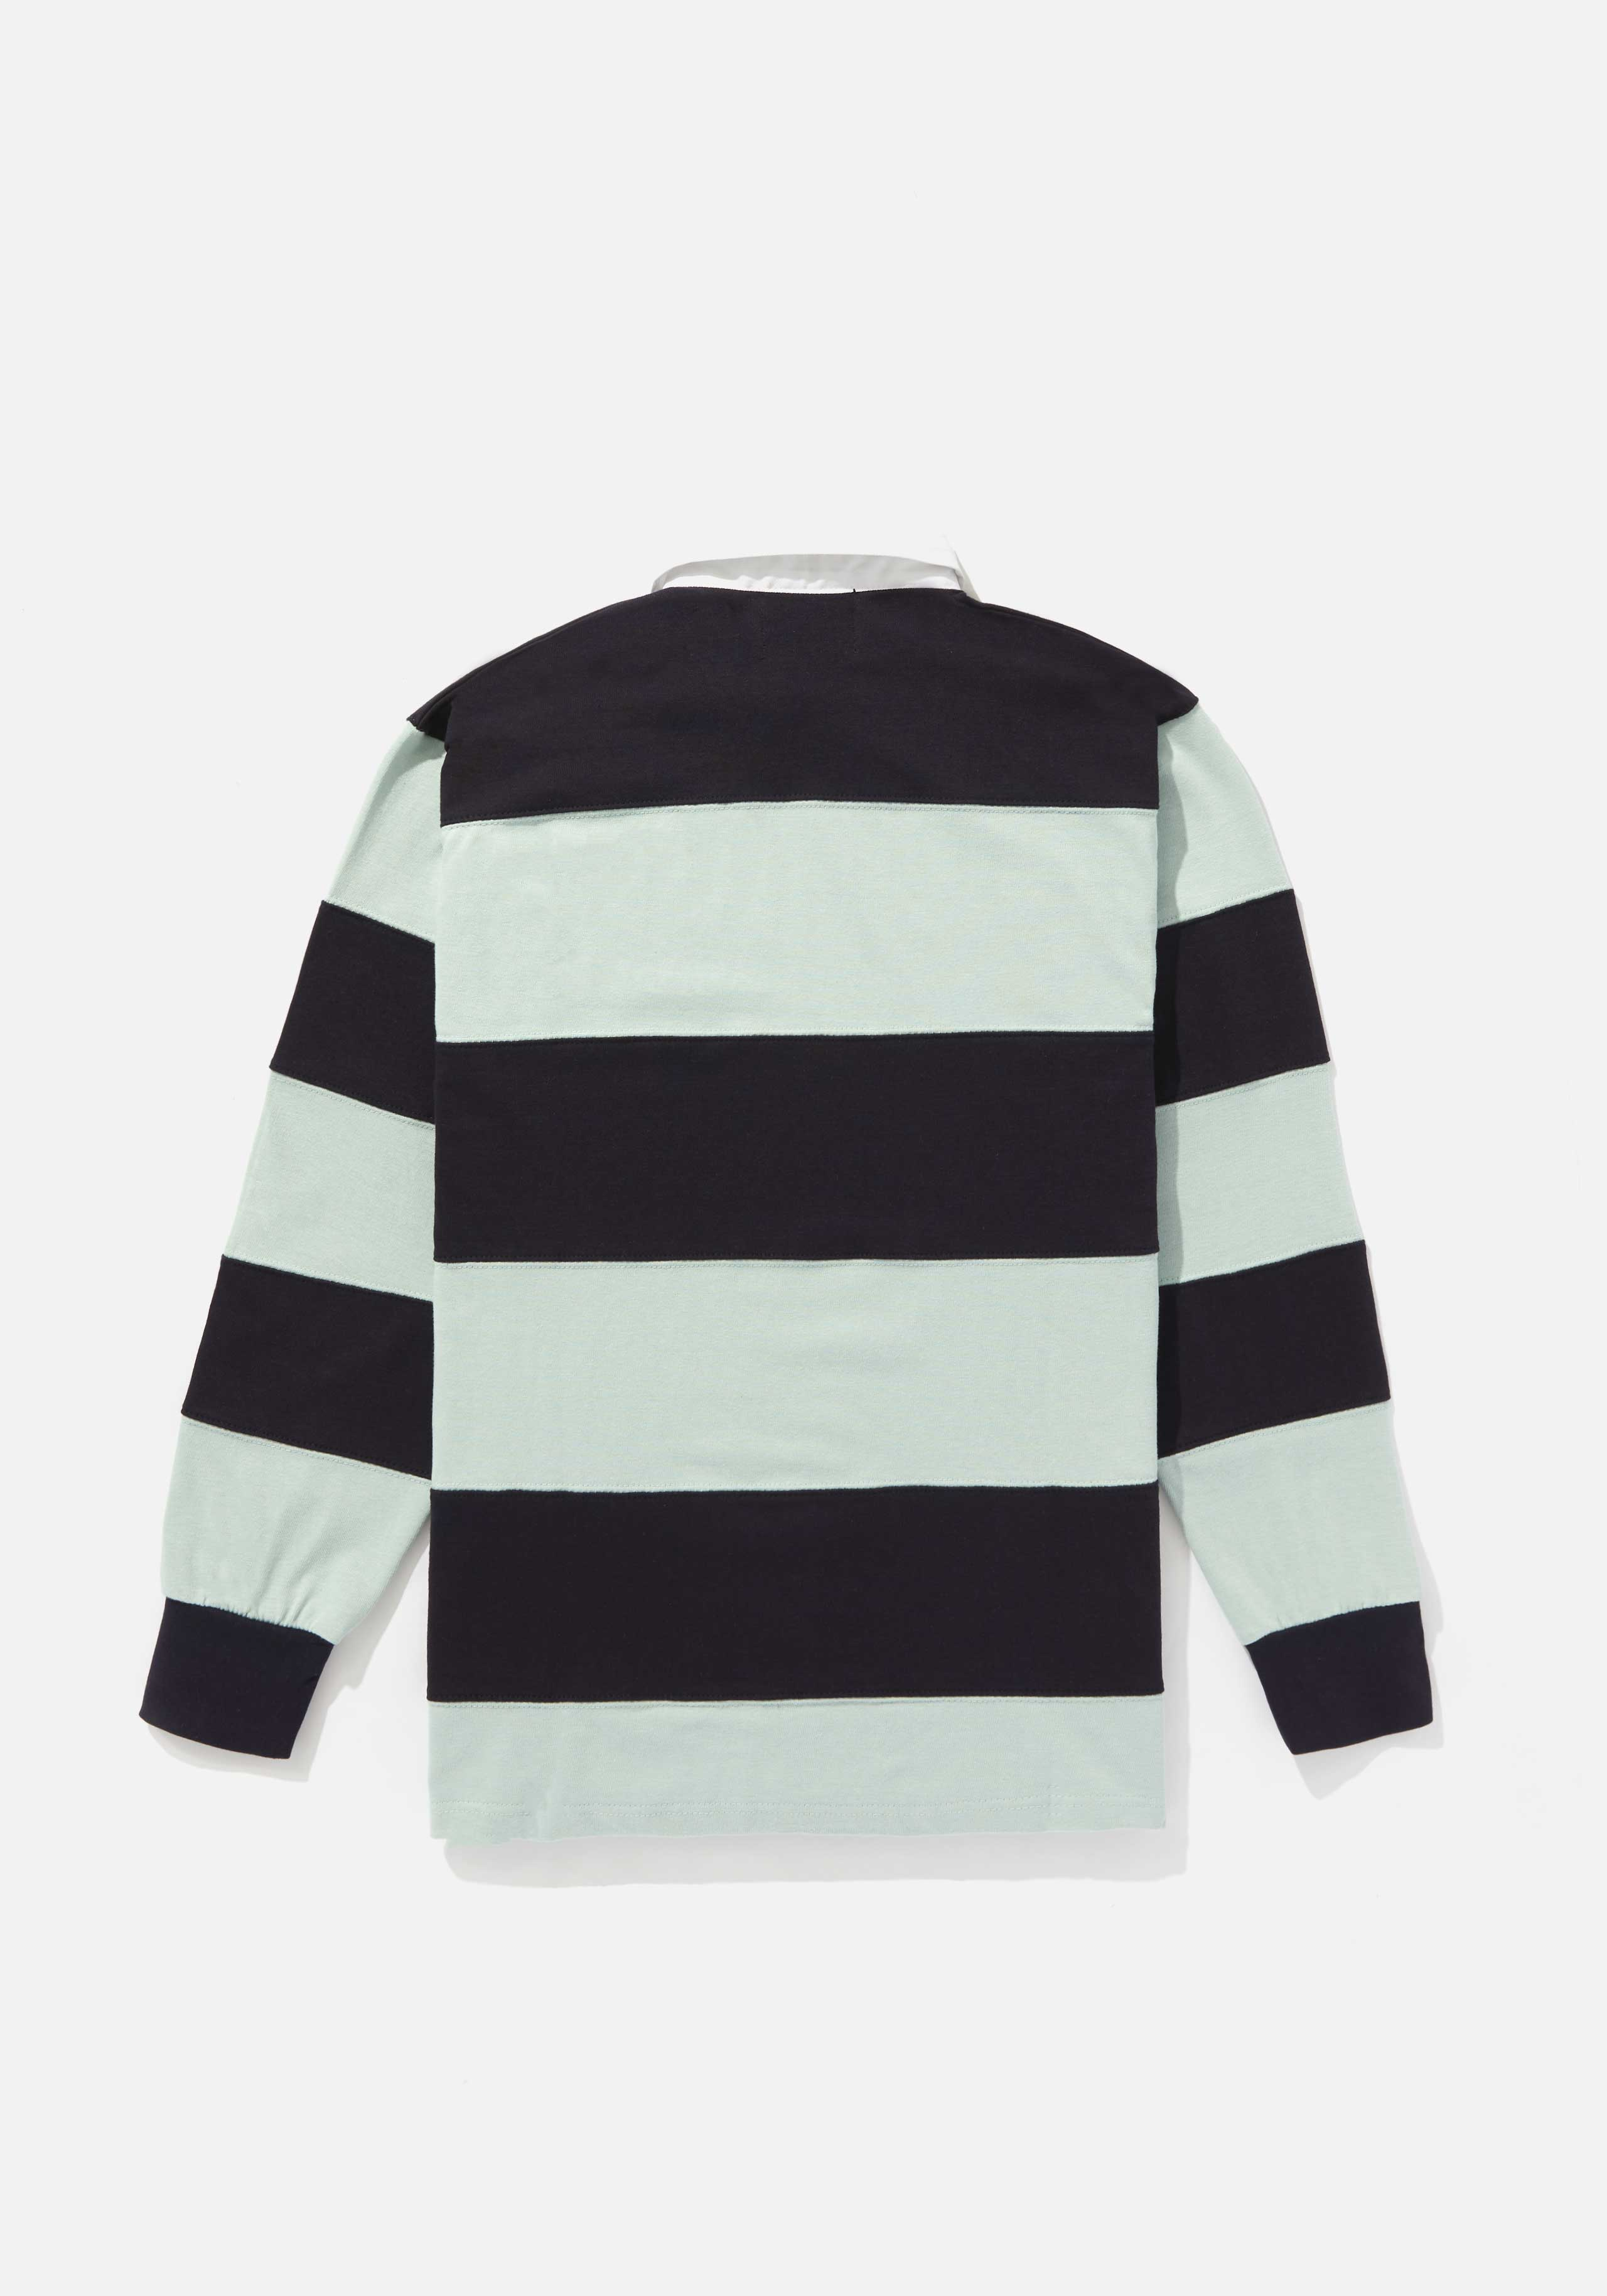 mki multi stripe rugby shirt 2